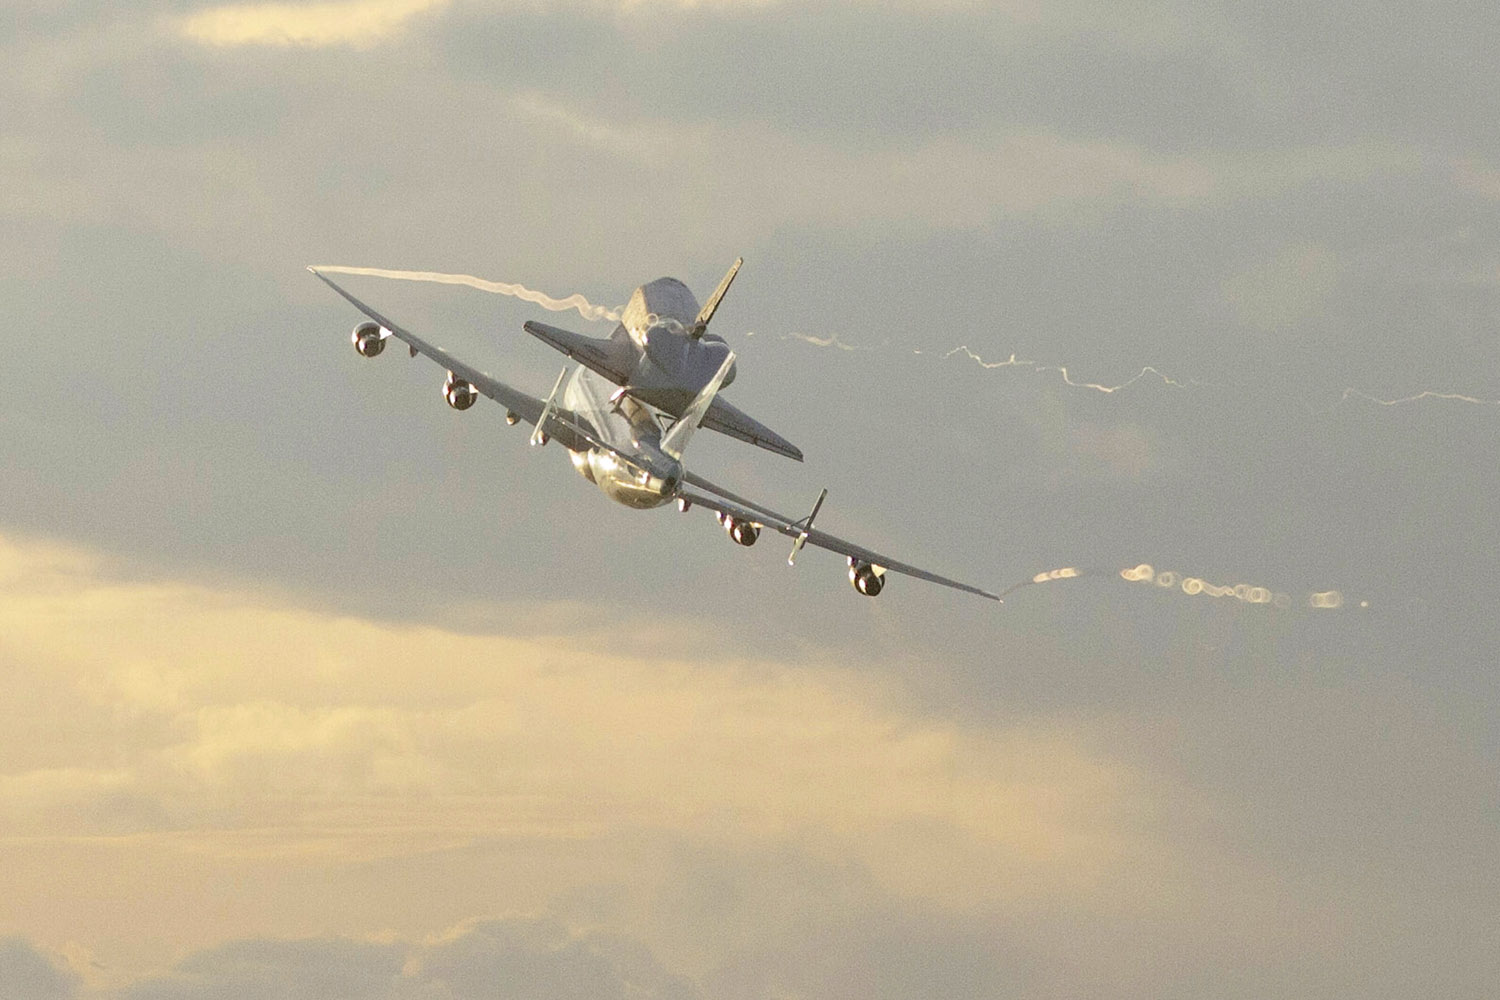 Sept. 19, 2012. Space shuttle Endeavour makes its departure atop a modified jumbo jet from the Kennedy Space Center in Cape Canaveral, Fla.